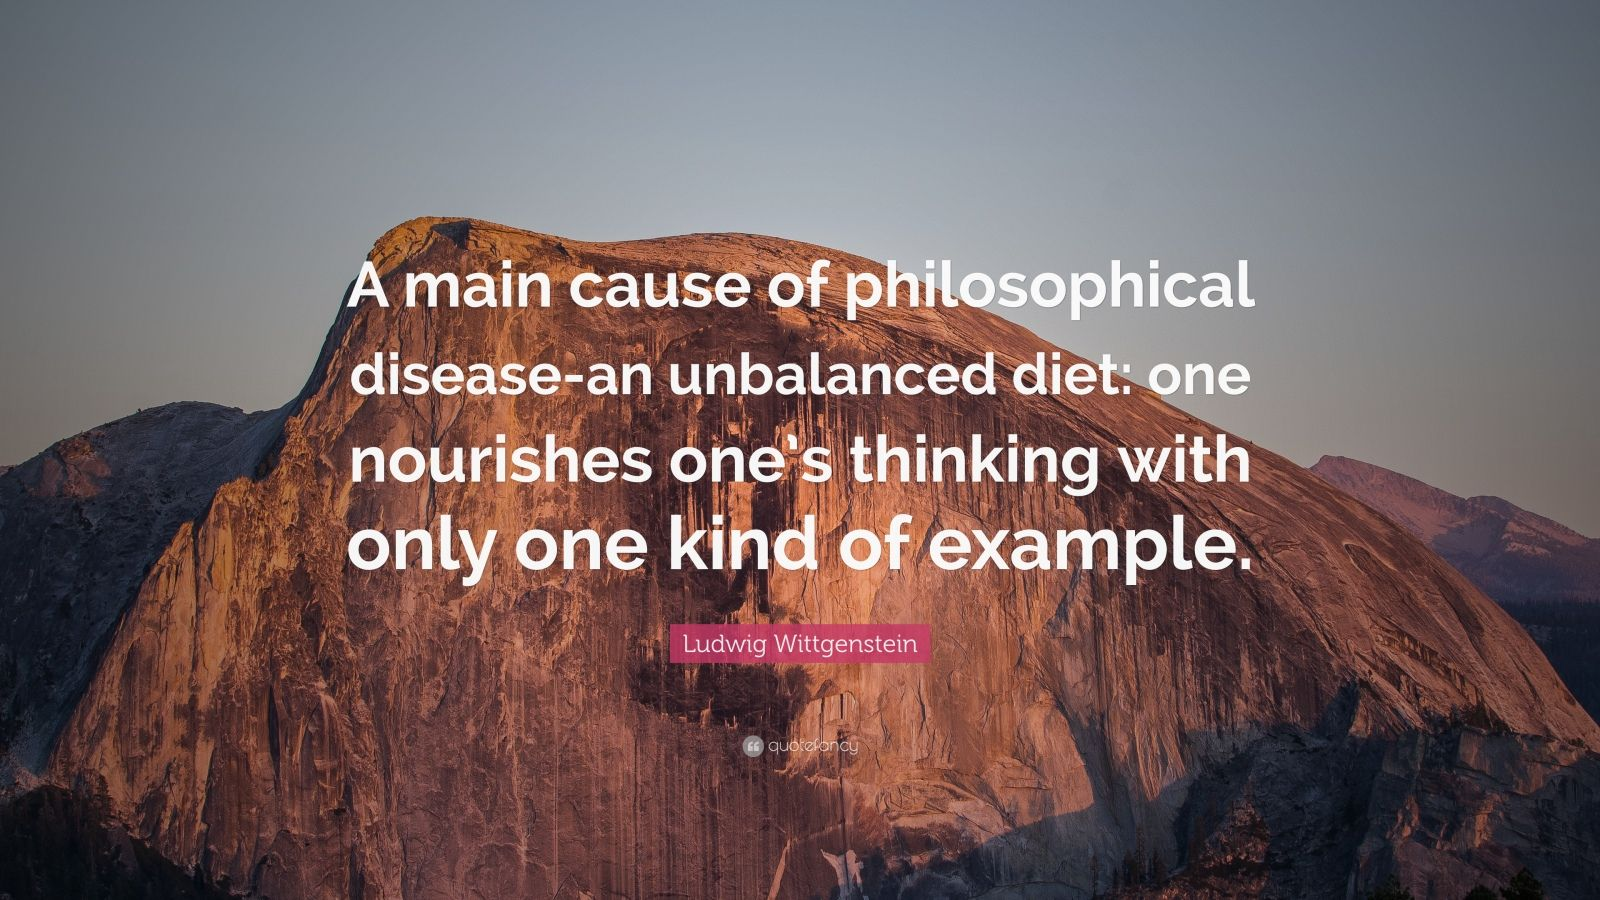 """Ludwig Wittgenstein Quote: """"A main cause of philosophical disease-an unbalanced diet: one nourishes one's thinking with only one kind of example."""""""